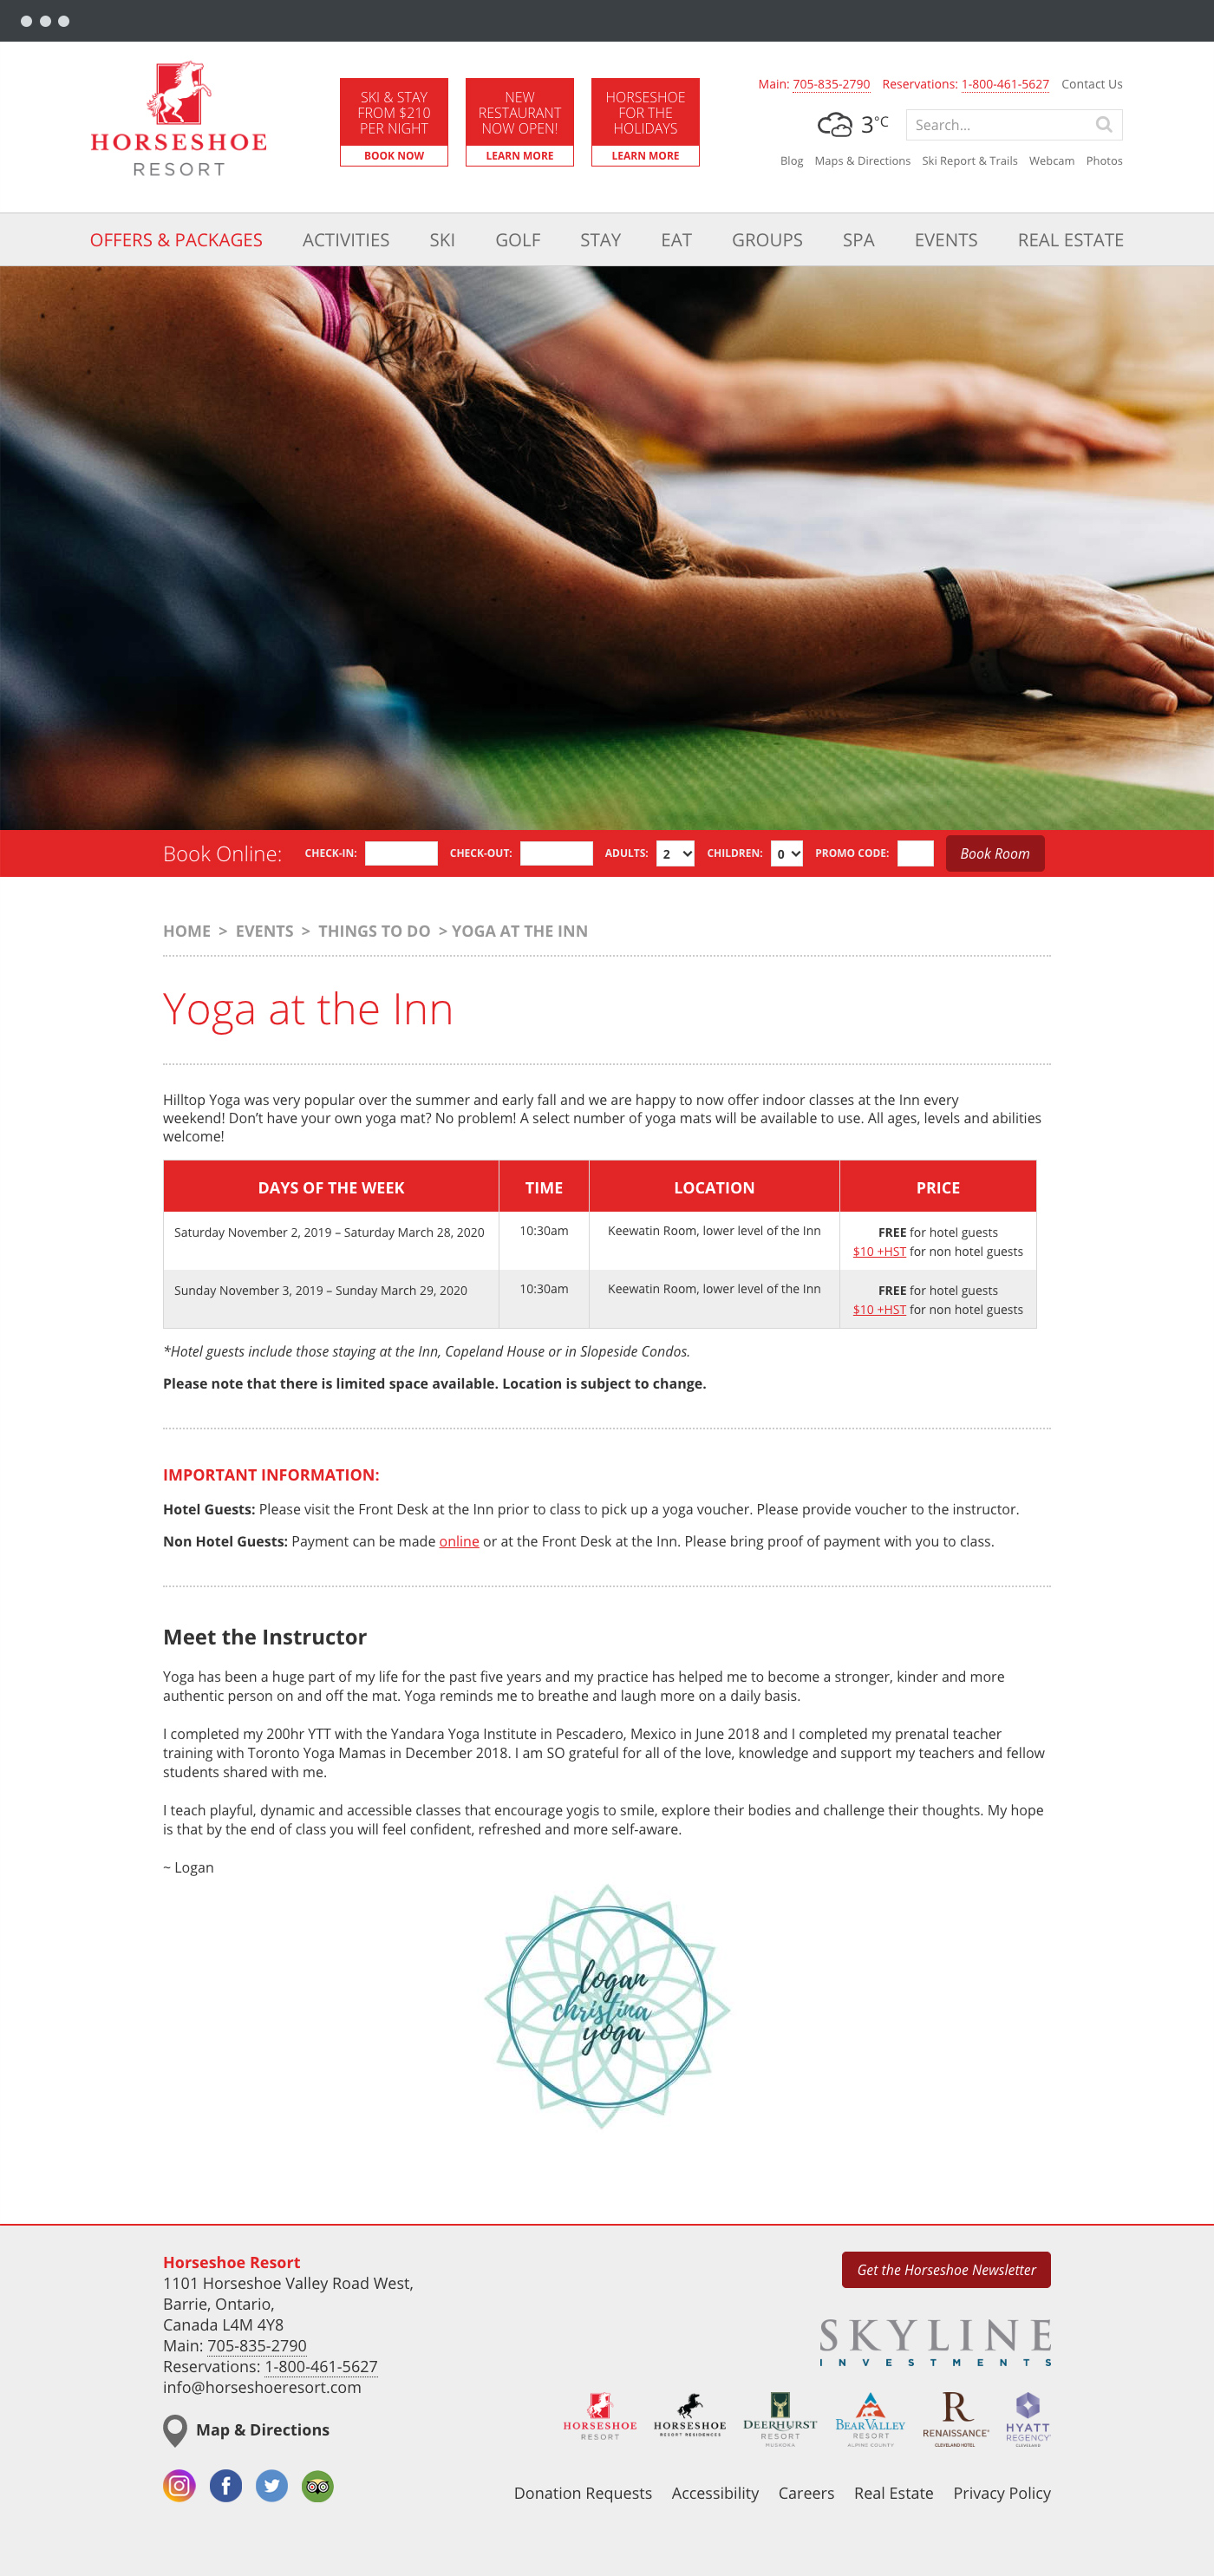 Horseshoe Resort website design 2